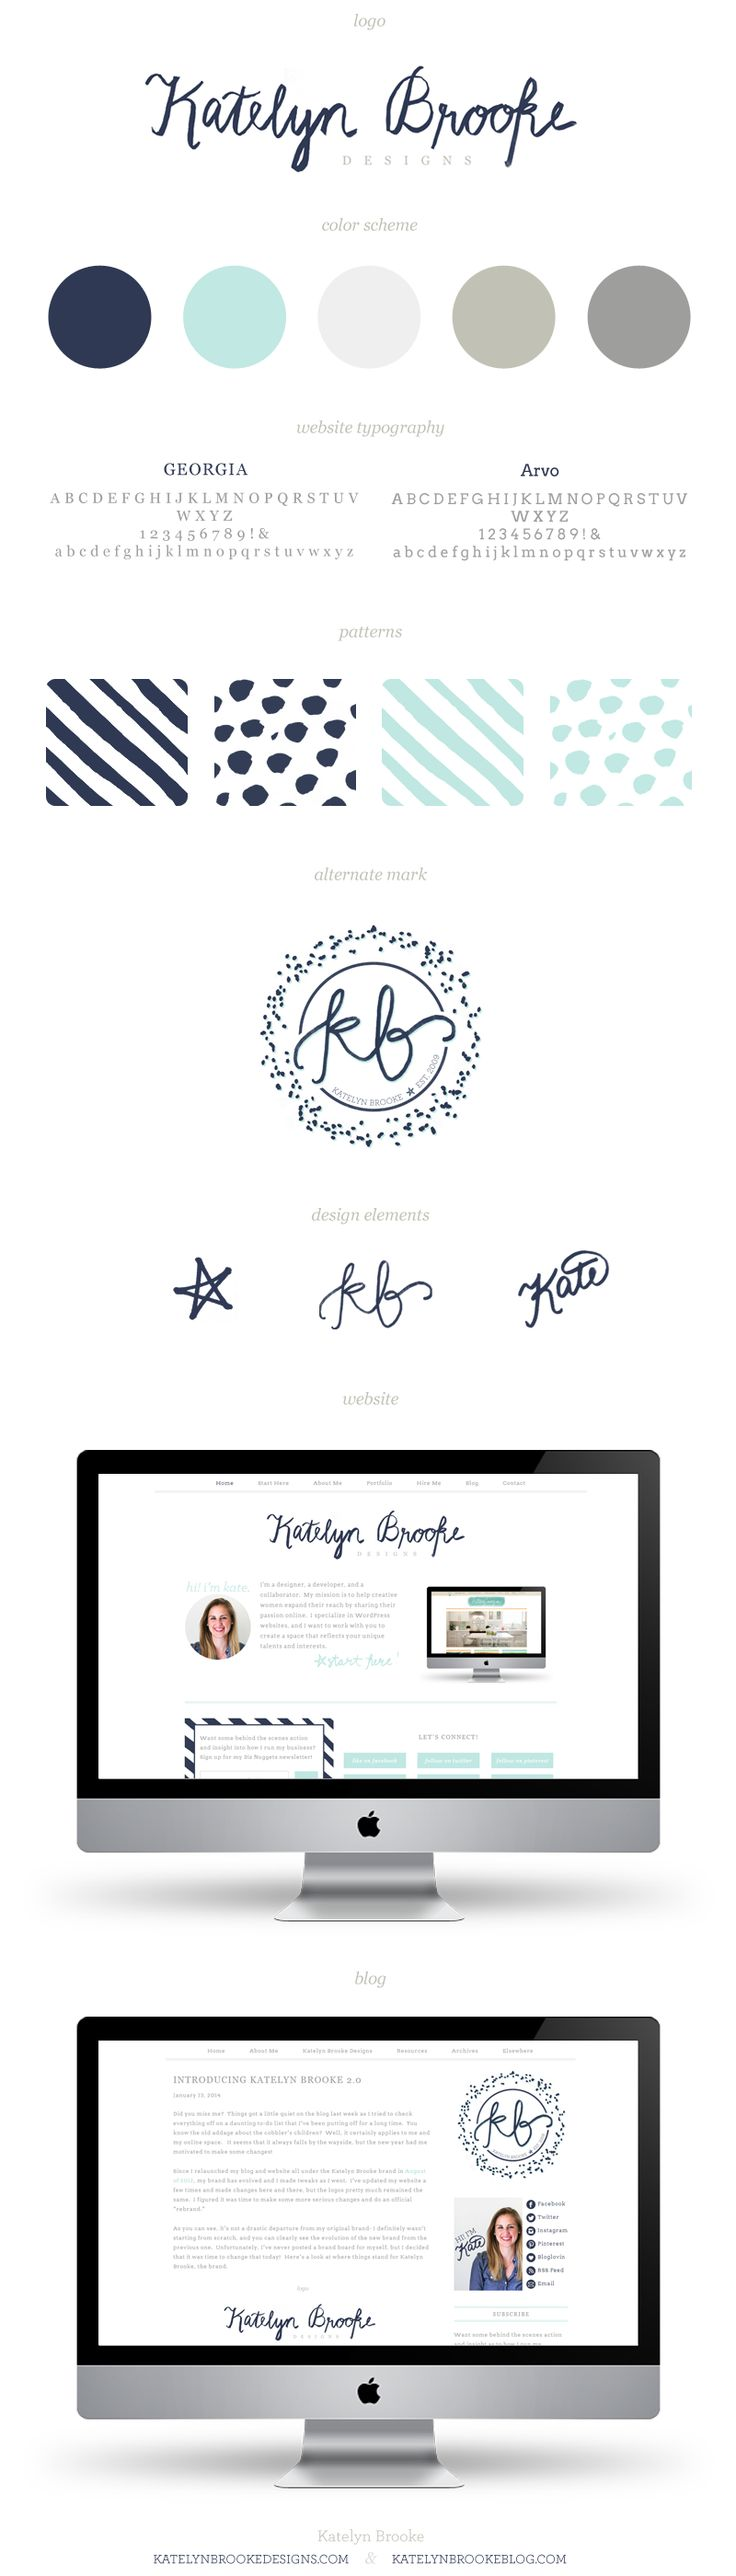 Simple, minimalist, clean, lovely colours :D | Katelyn Brooke 2.0 brand and site design || katelynbrooke.com